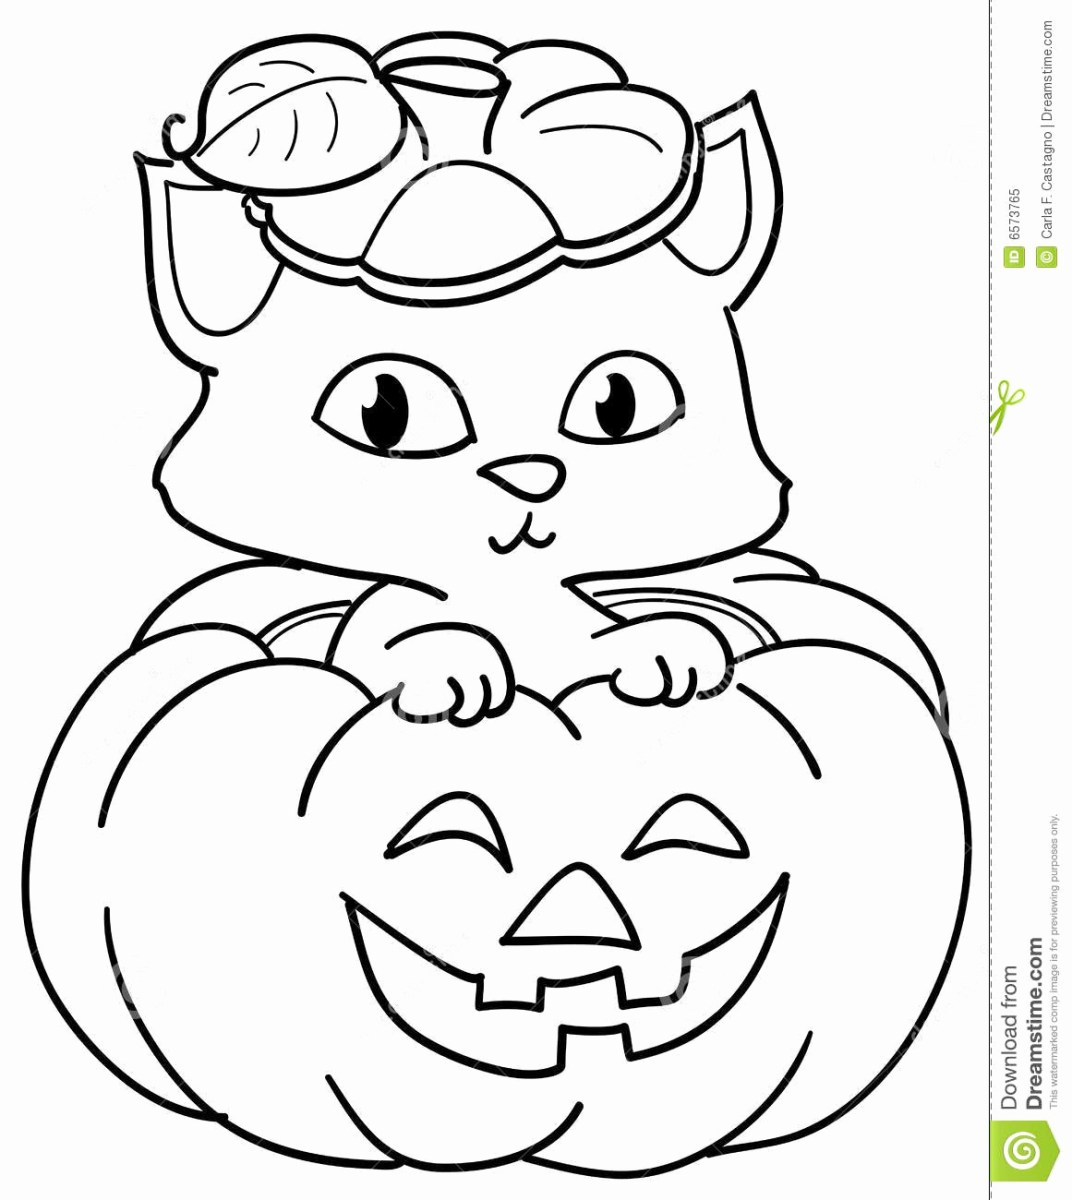 Halloween Coloring Pages Printables Coloring Page Sweet Spooky Little Coloring Page For Sharing Free Birijus Com